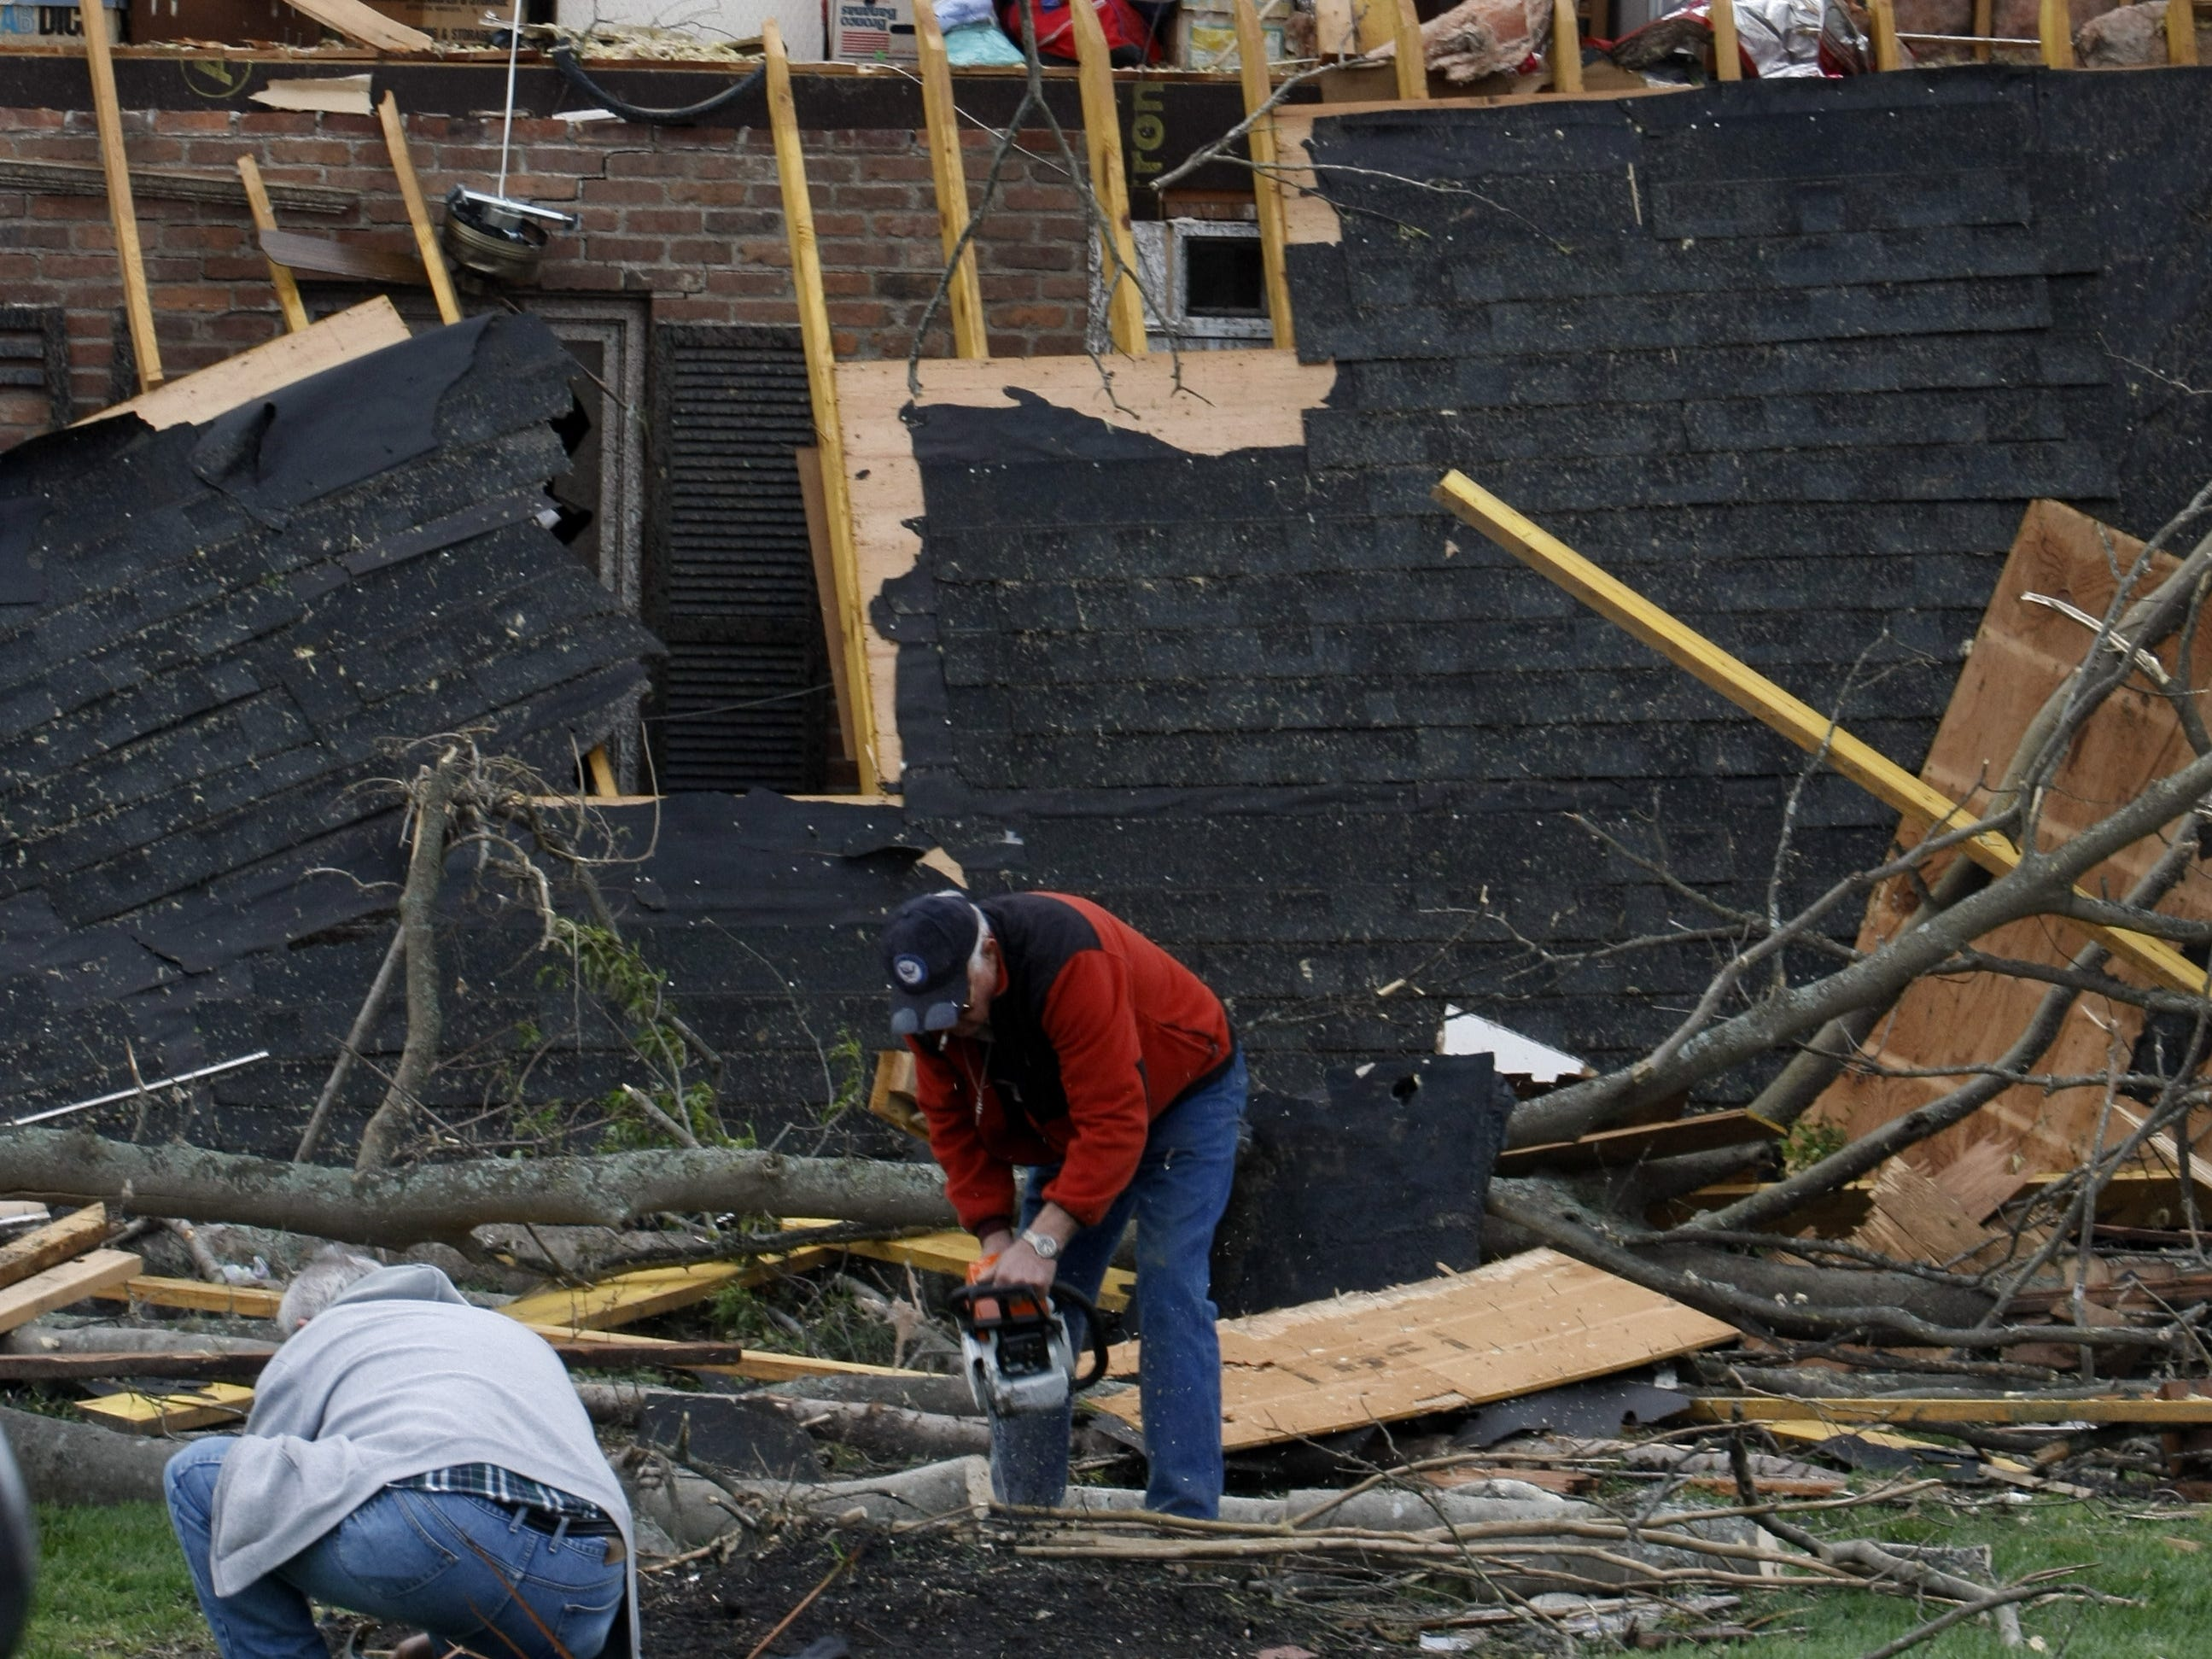 Workers cut limbs and get things cleaned up a day after a tornado roared through Murfreesboro.